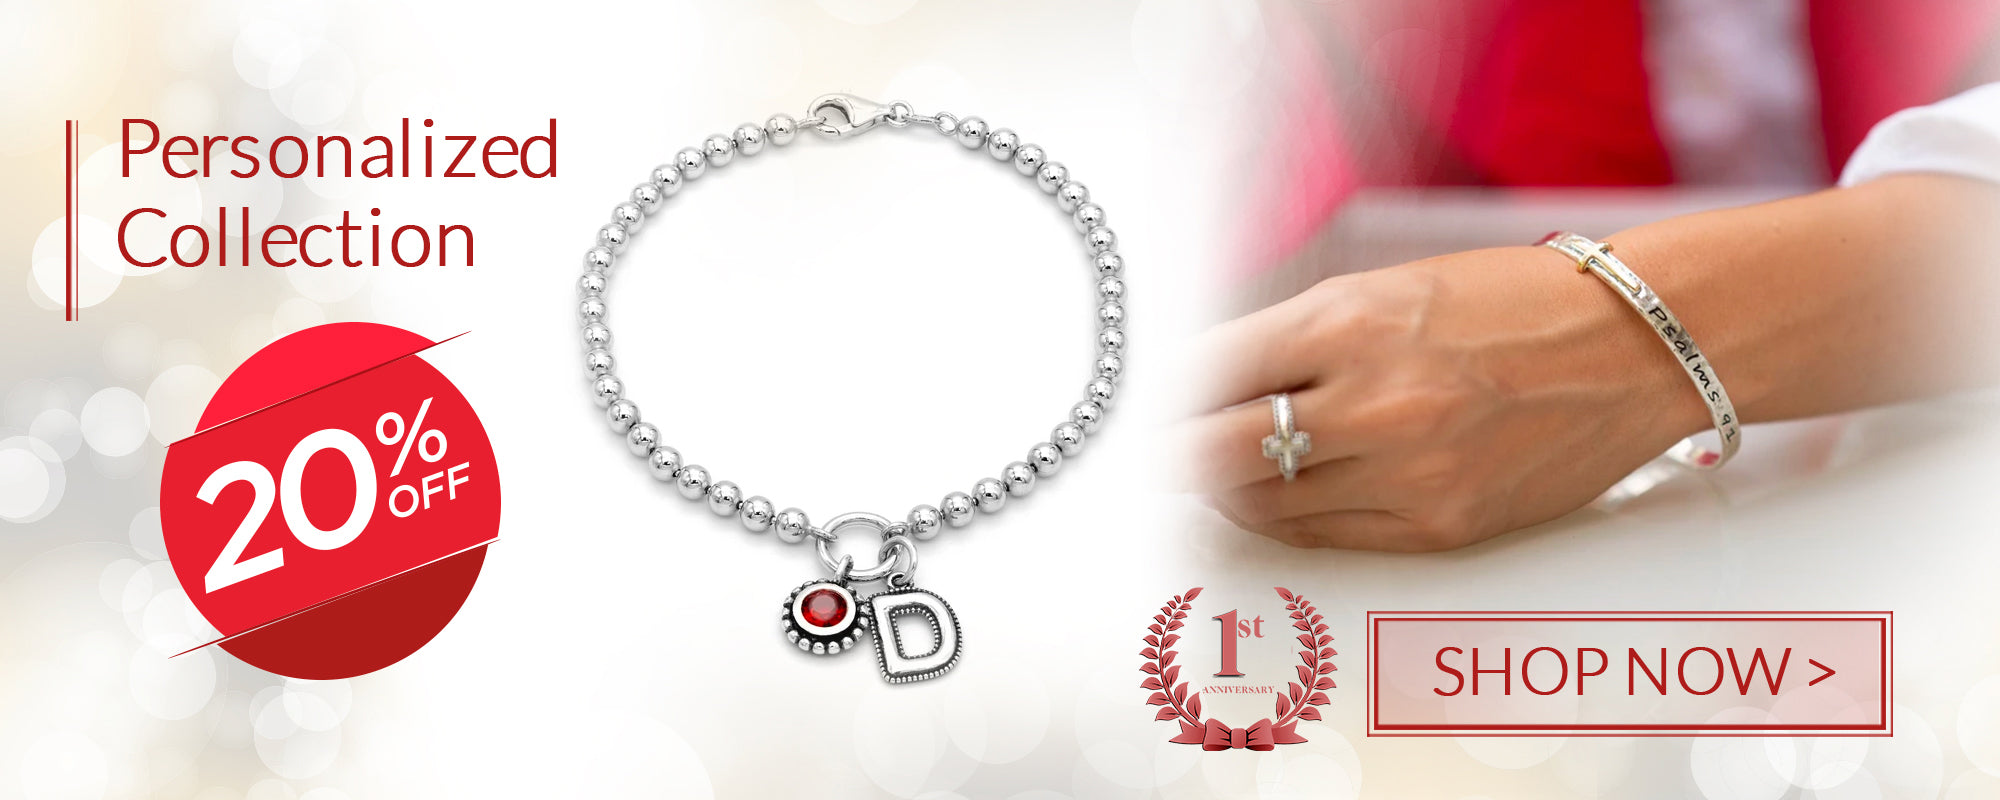 20% off personalized collection